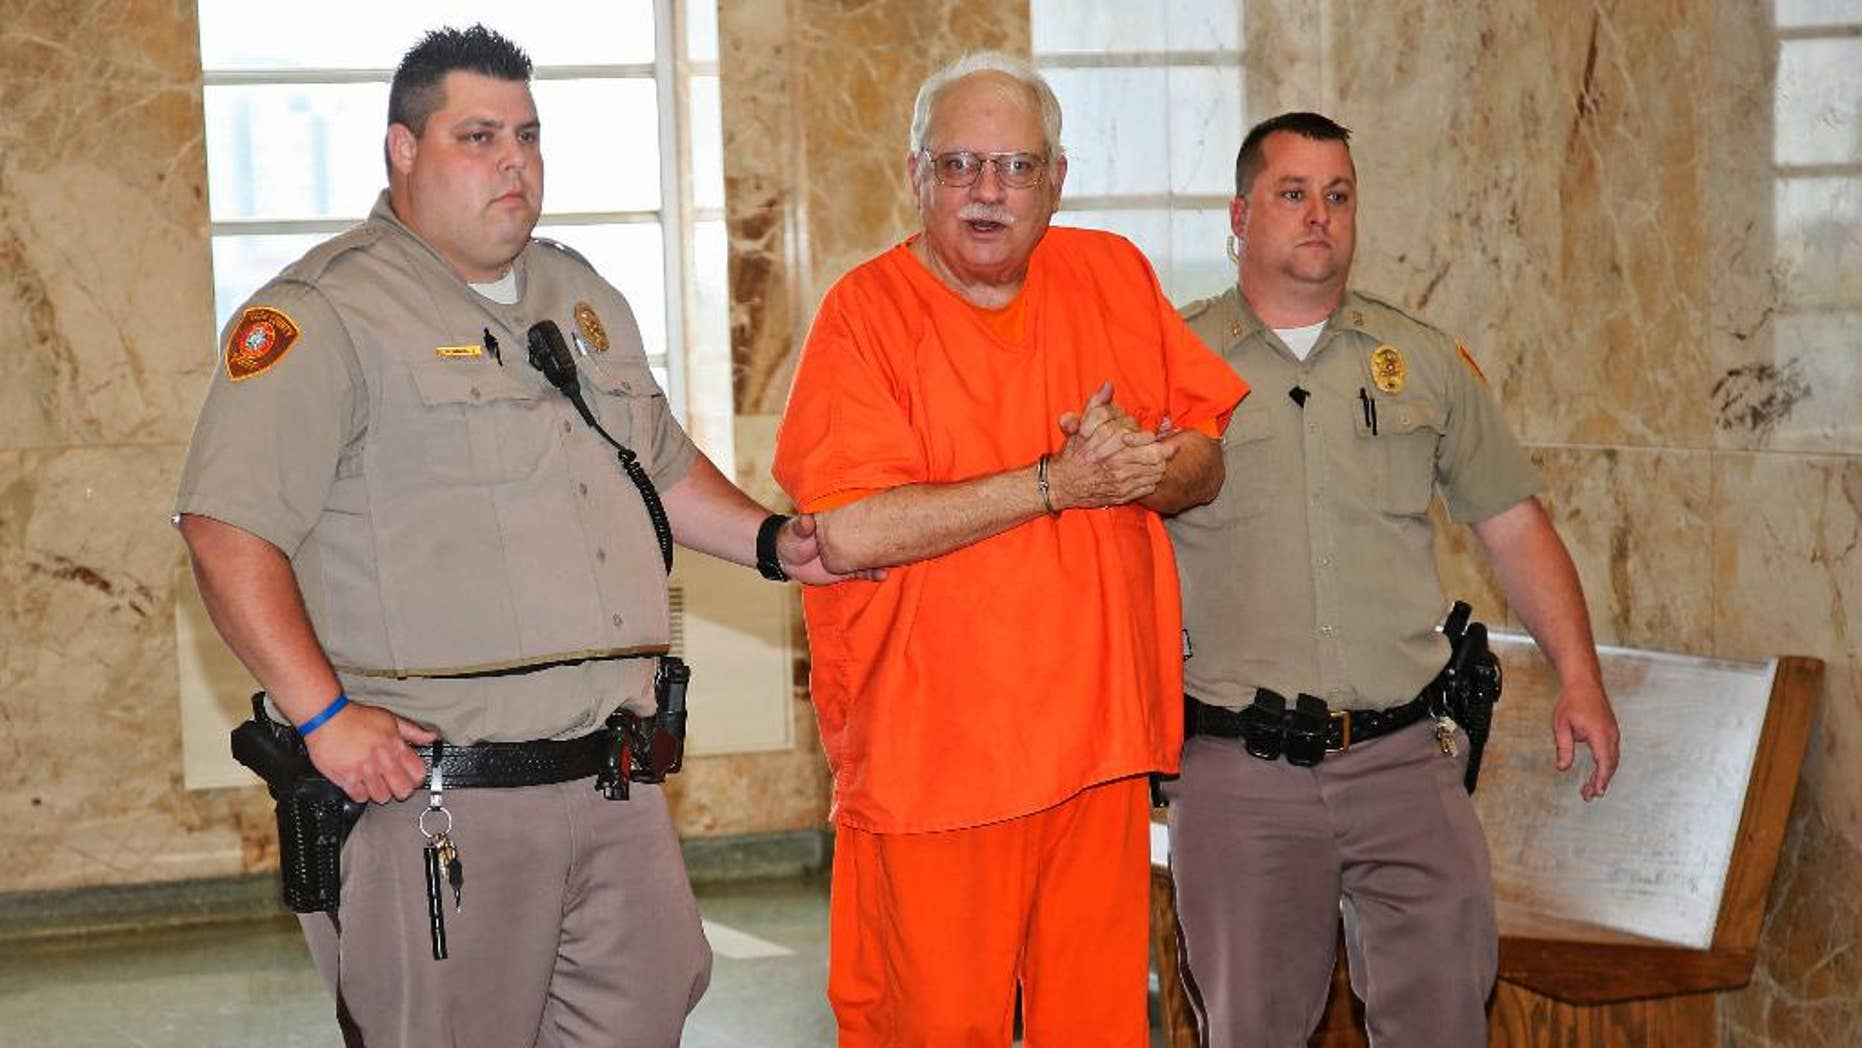 Robert Bates, a former Oklahoma volunteer sheriff's deputy who said he mistook his handgun for his stun gun when he fatally shot an unarmed suspect last year, is escorted to the courtroom for his sentencing at the courthouse in Tulsa, Okla., Tuesday, May 31, 2016. Bates was convicted of second-degree manslaughter. (AP Photo/Sue Ogrocki)